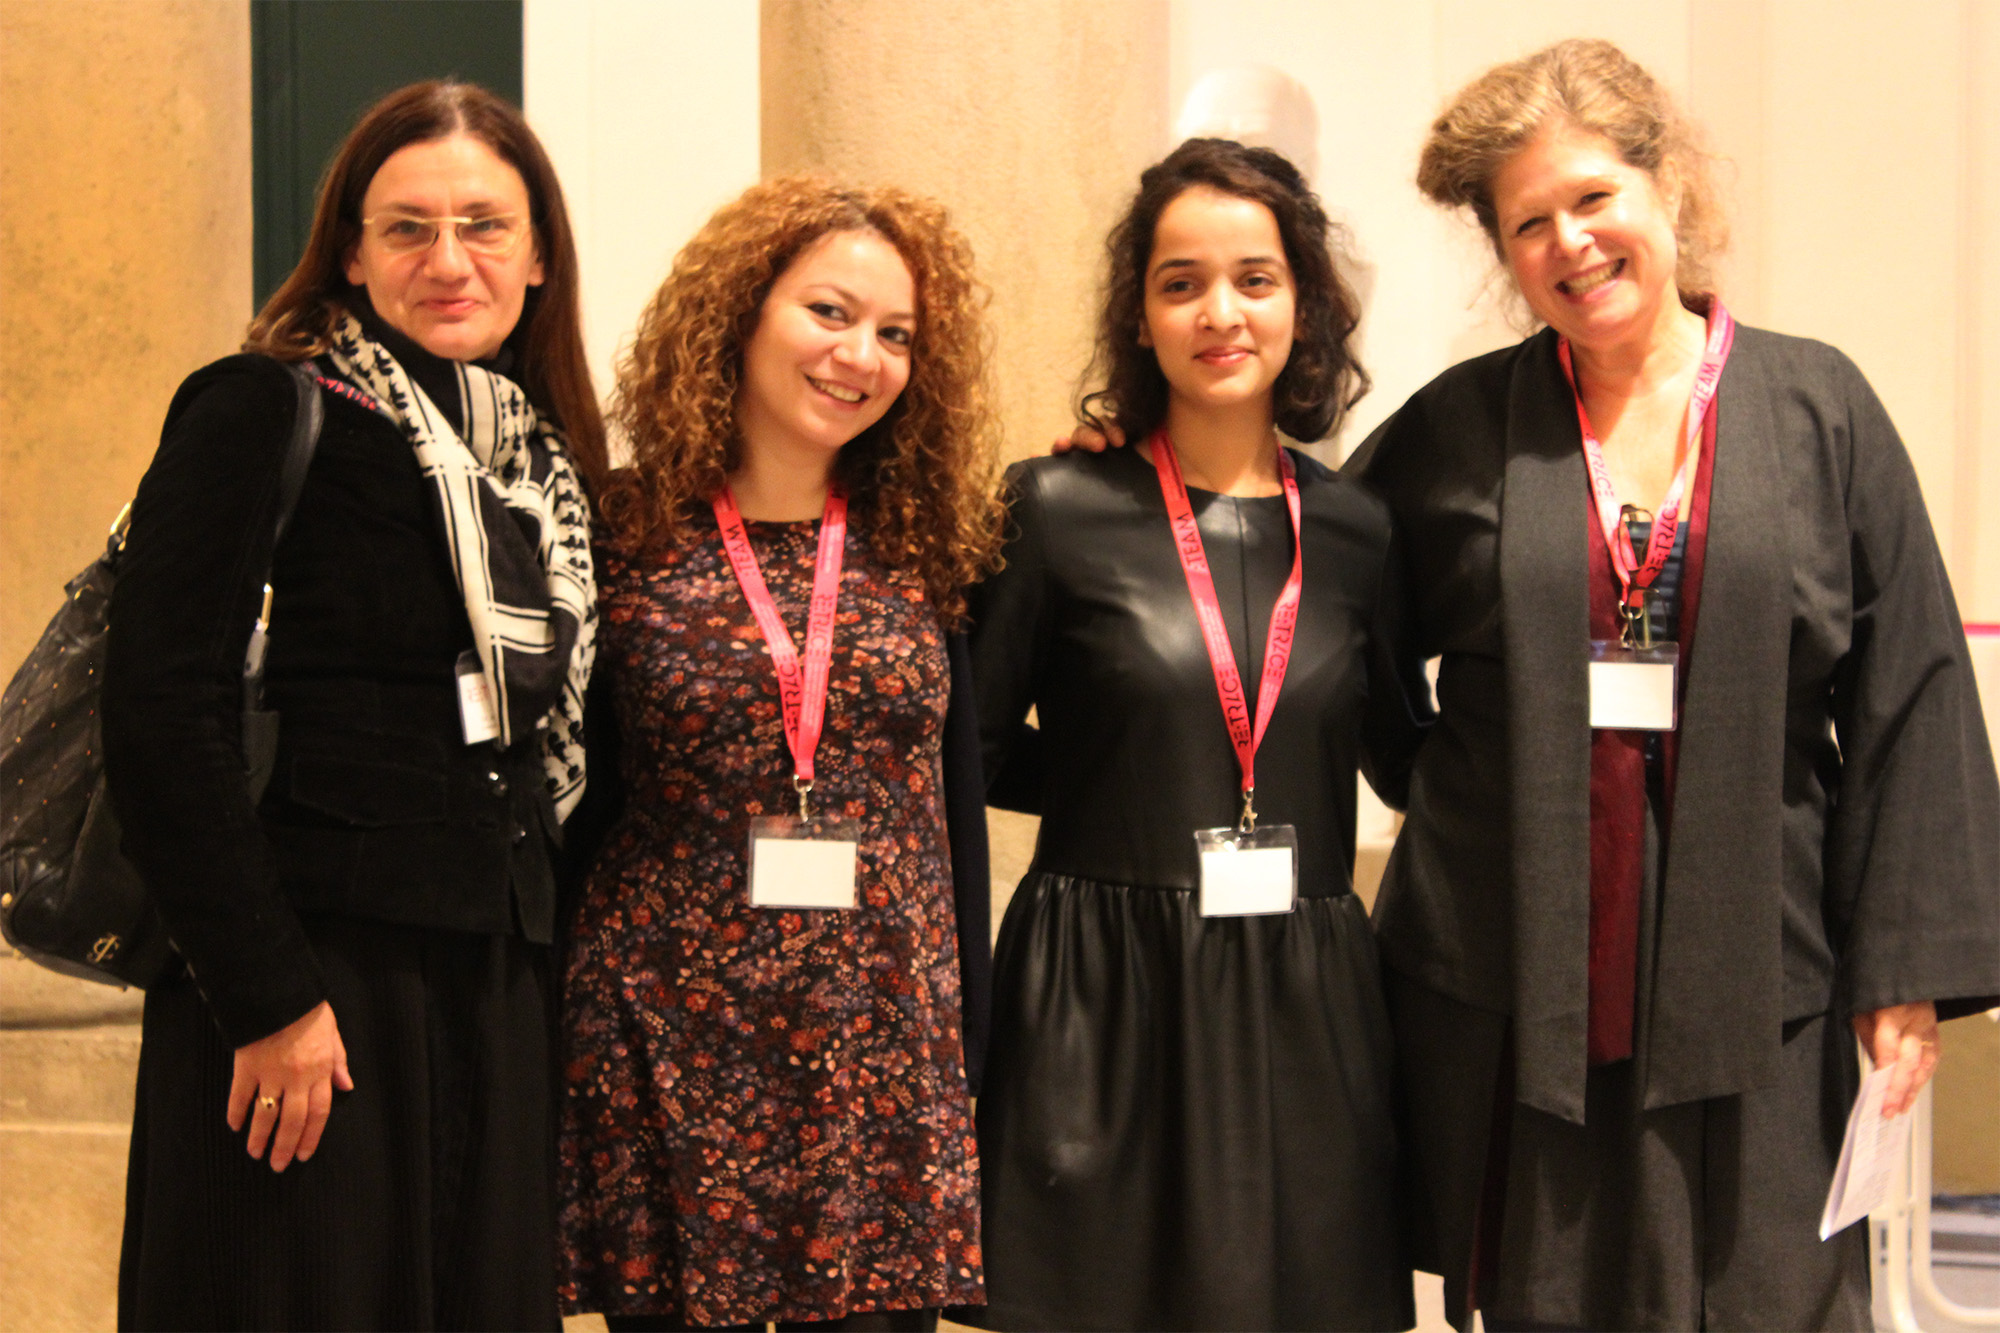 Media Arts Cultures professors and students: Ana Peraica, Gohar Vardyan, Alifiyah Imani, and Wendy Coones| Re:Trace | Day 3| Austrian Academy of Sciences Vienna